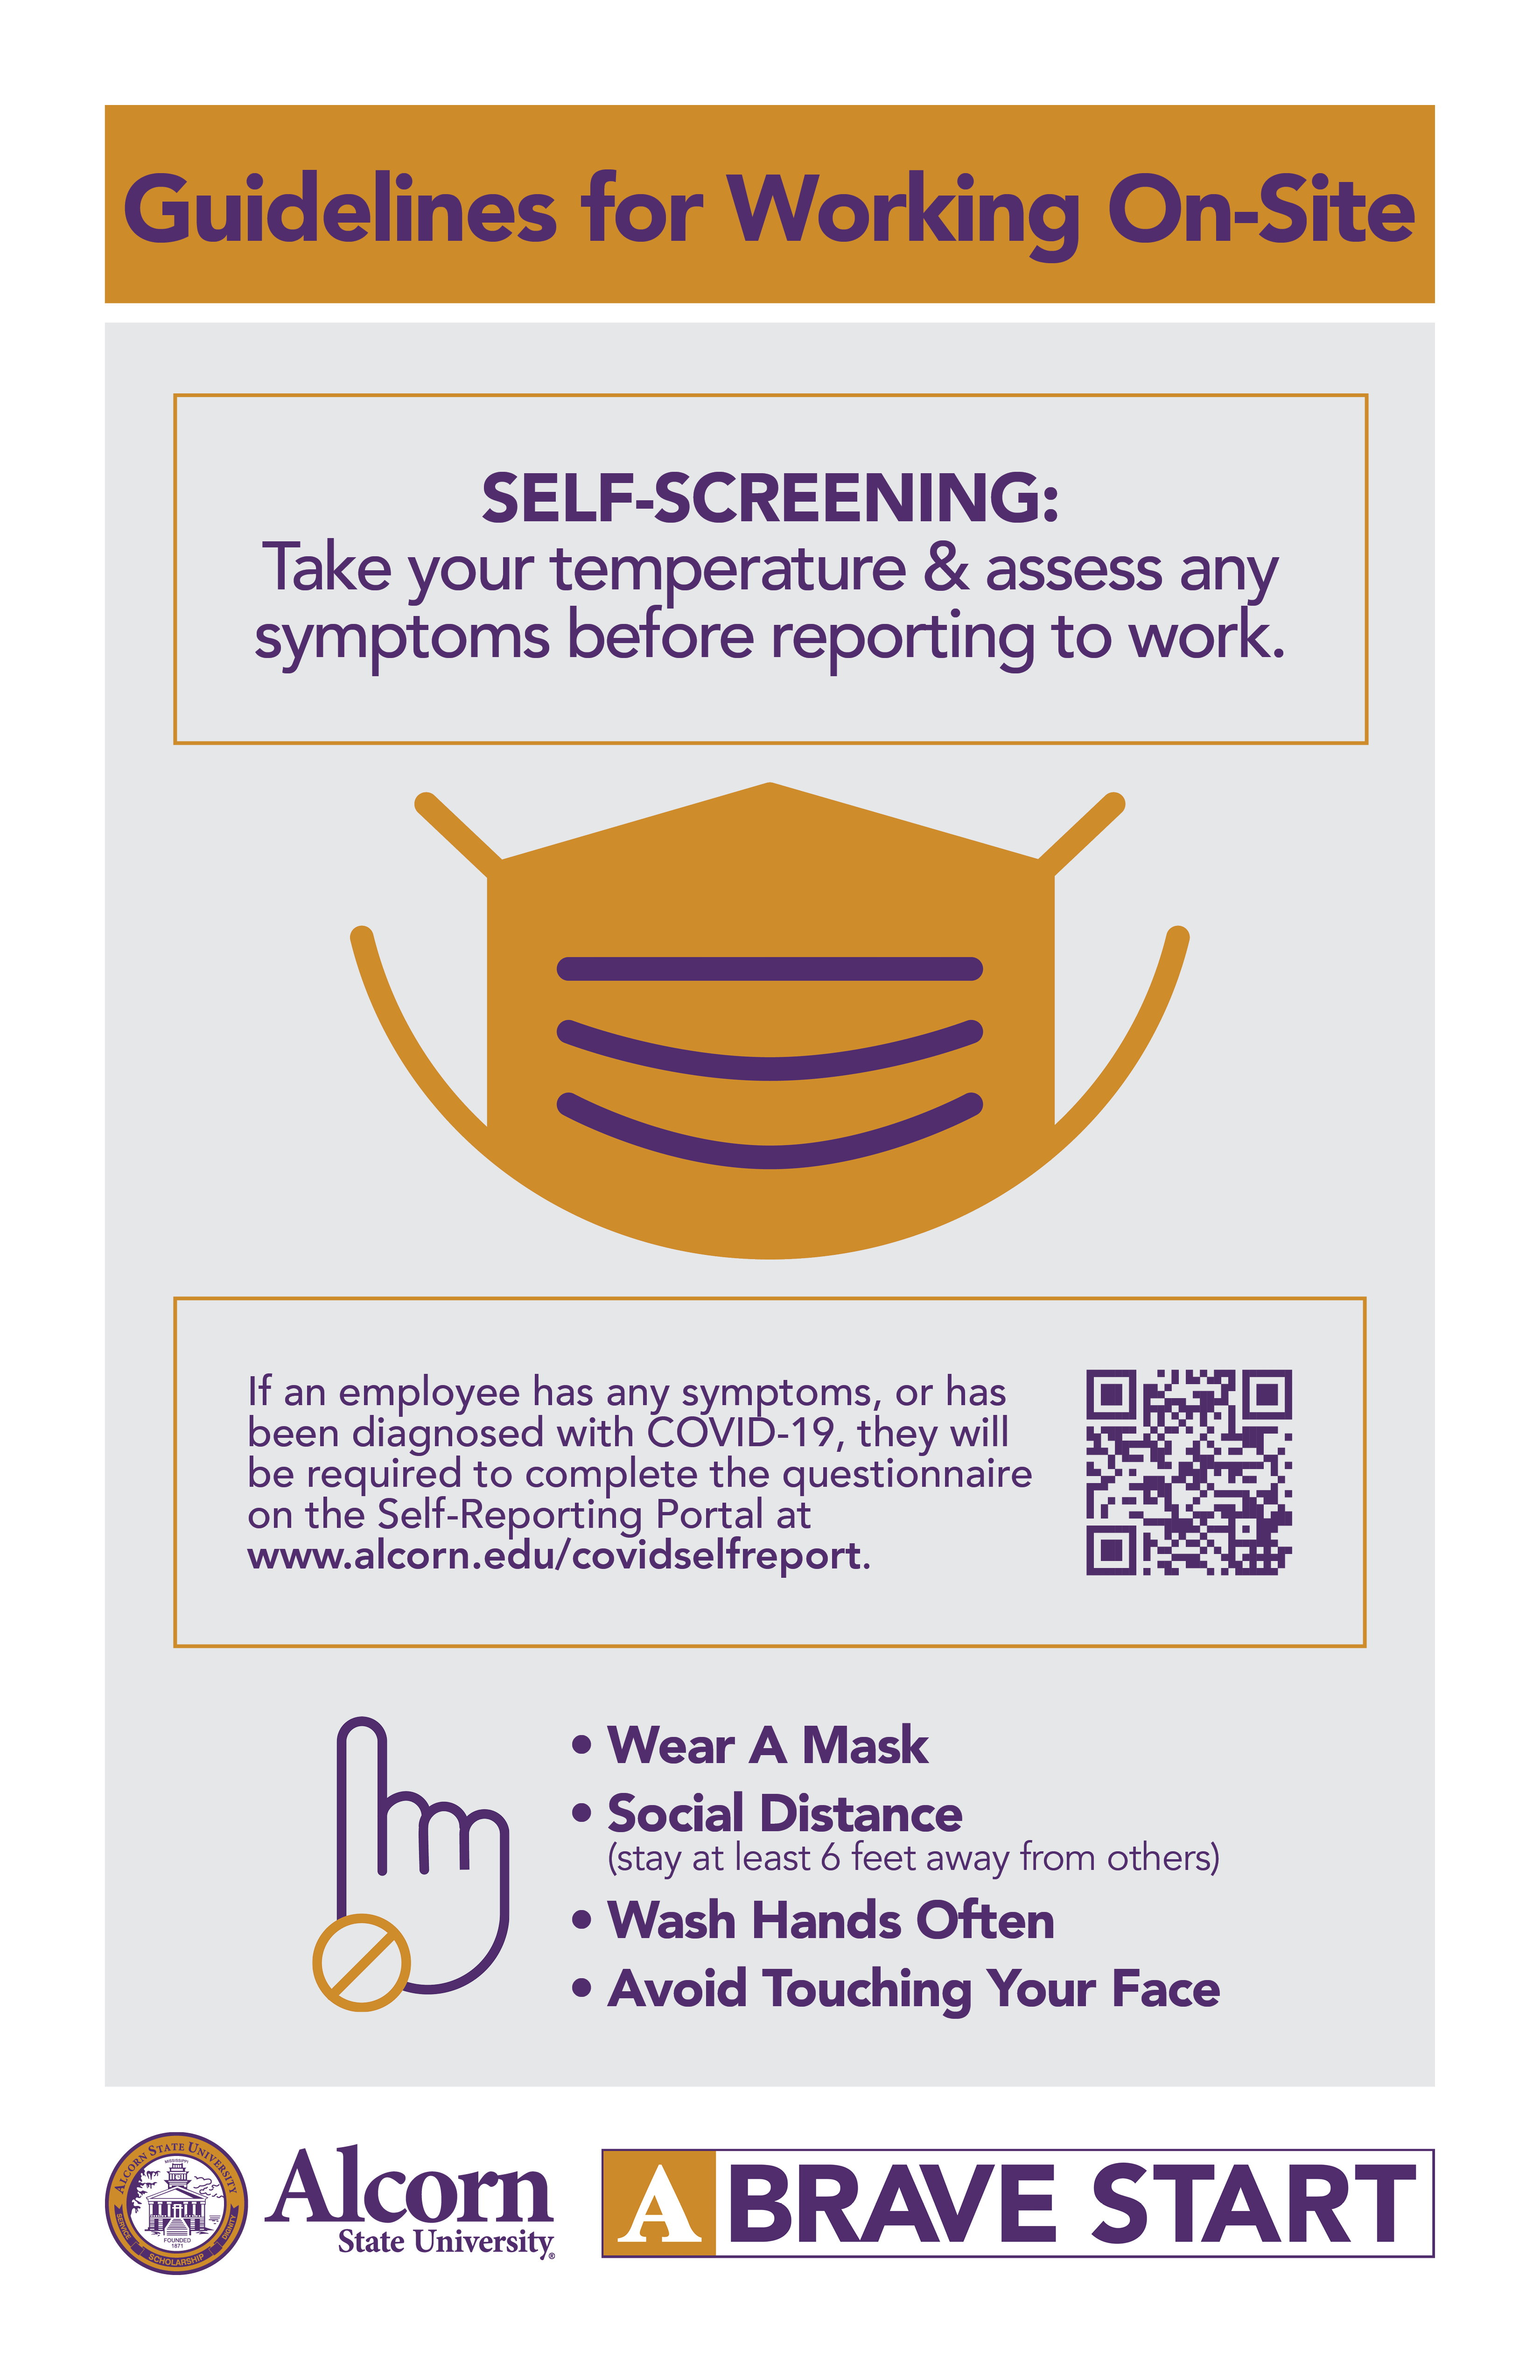 Guidelines for Working On-Site. SELF-SCREENING: Take your temperature & assess any symptoms before reporting to work (Picture of a mask). If an employee has any symptoms, or has been diagnosed with COVID-19, they will be required to complete the questionnaire on the Self-Reporting Portal at www.alcorn.edu/covidselfreport. (Picture of a hand with caution mark) • Wear A Mask • Social Distance (stay at least 6 feet away from others) • Wash Hands Often • Avoid Touching Your Face. (Alcorn logo mark. A Brave Start logo mark.)